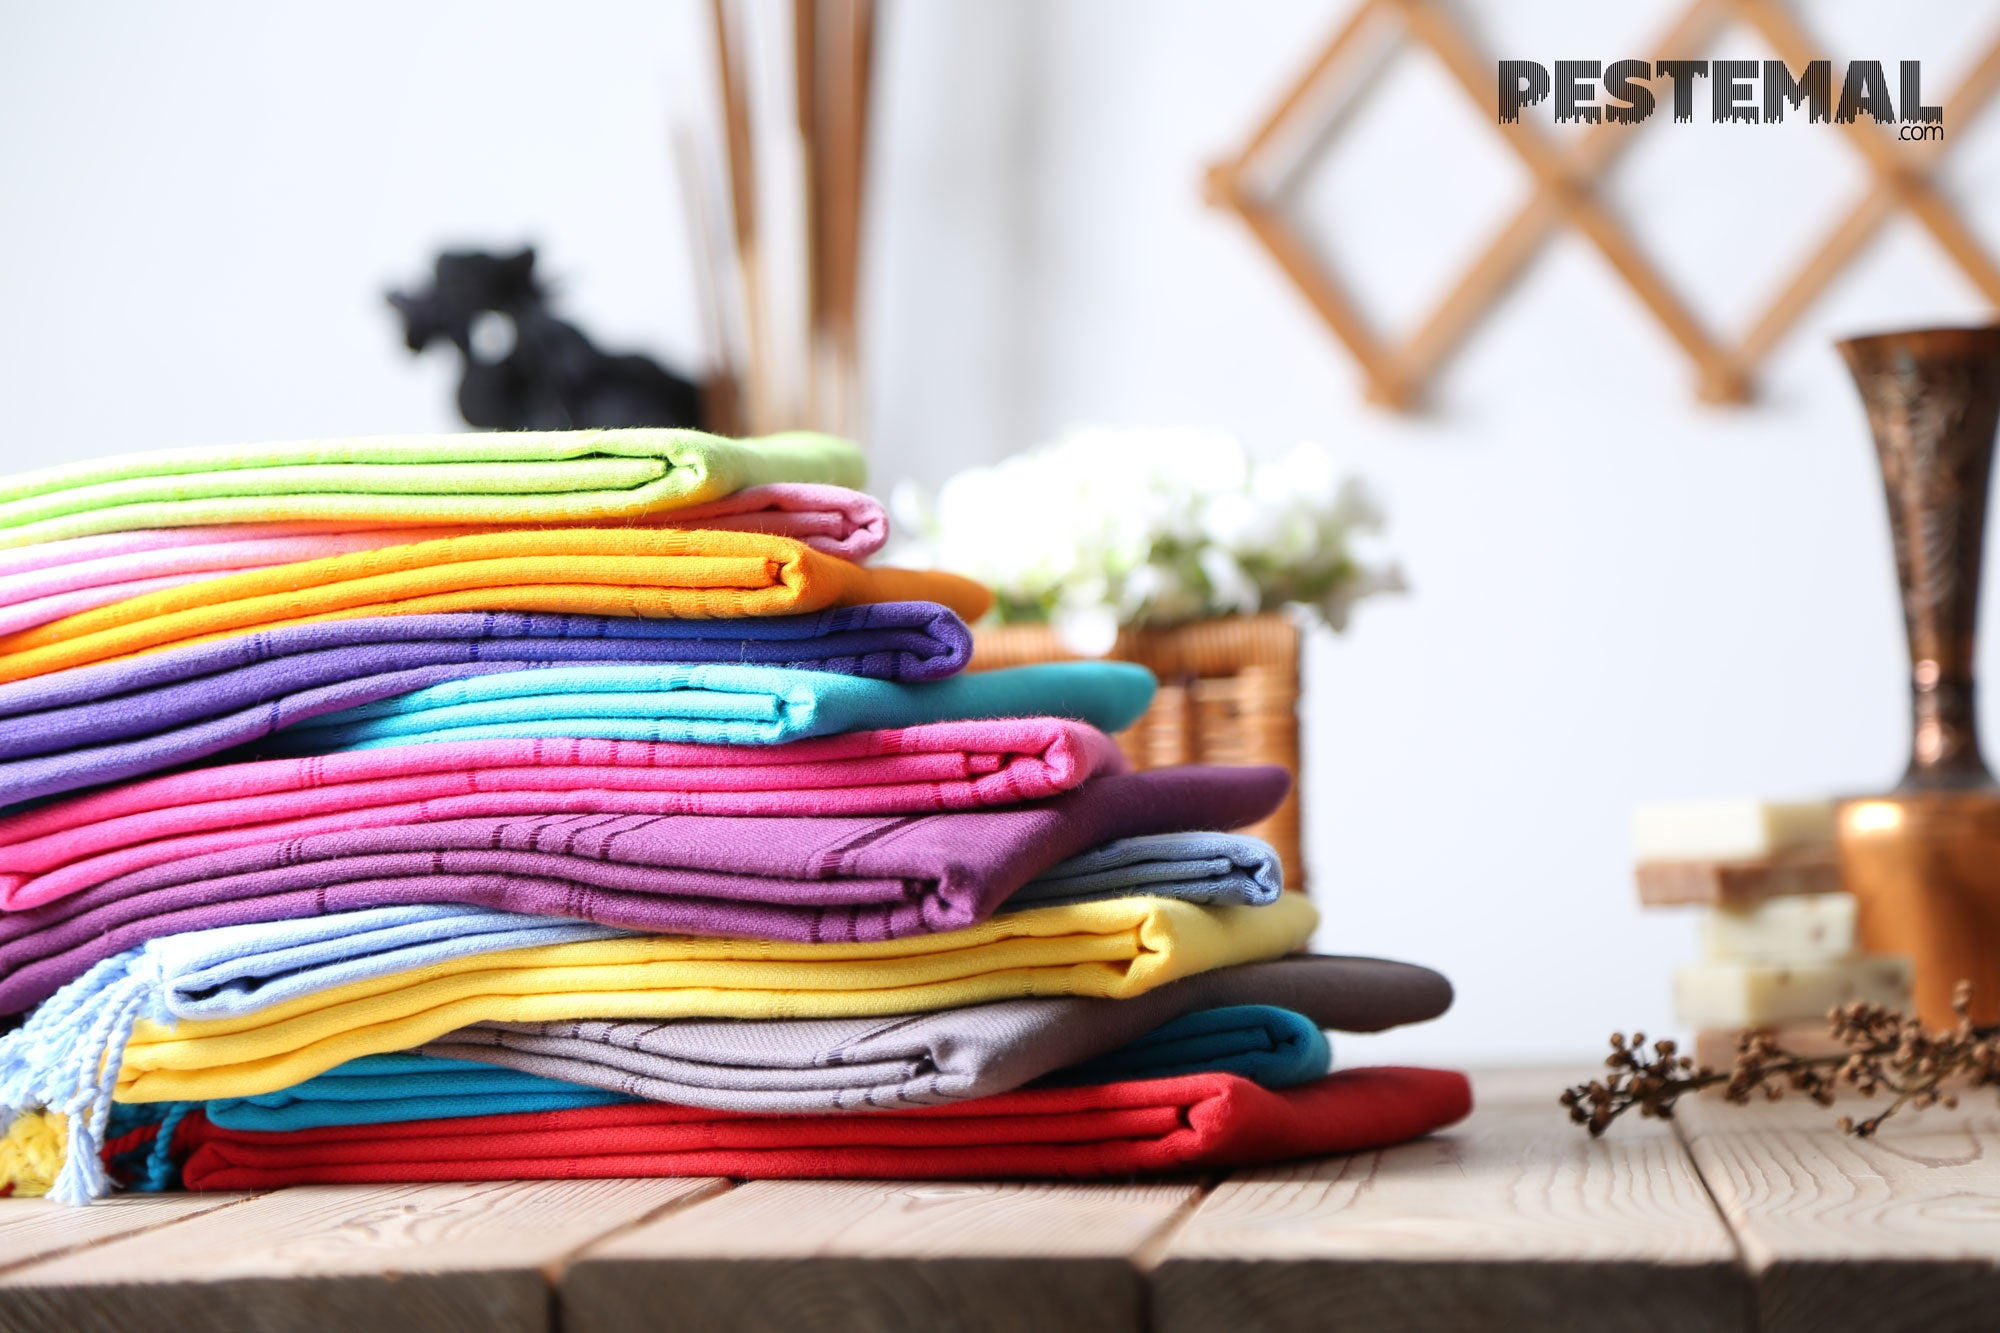 Be Part of the Summer Trend with Pestemal Towels